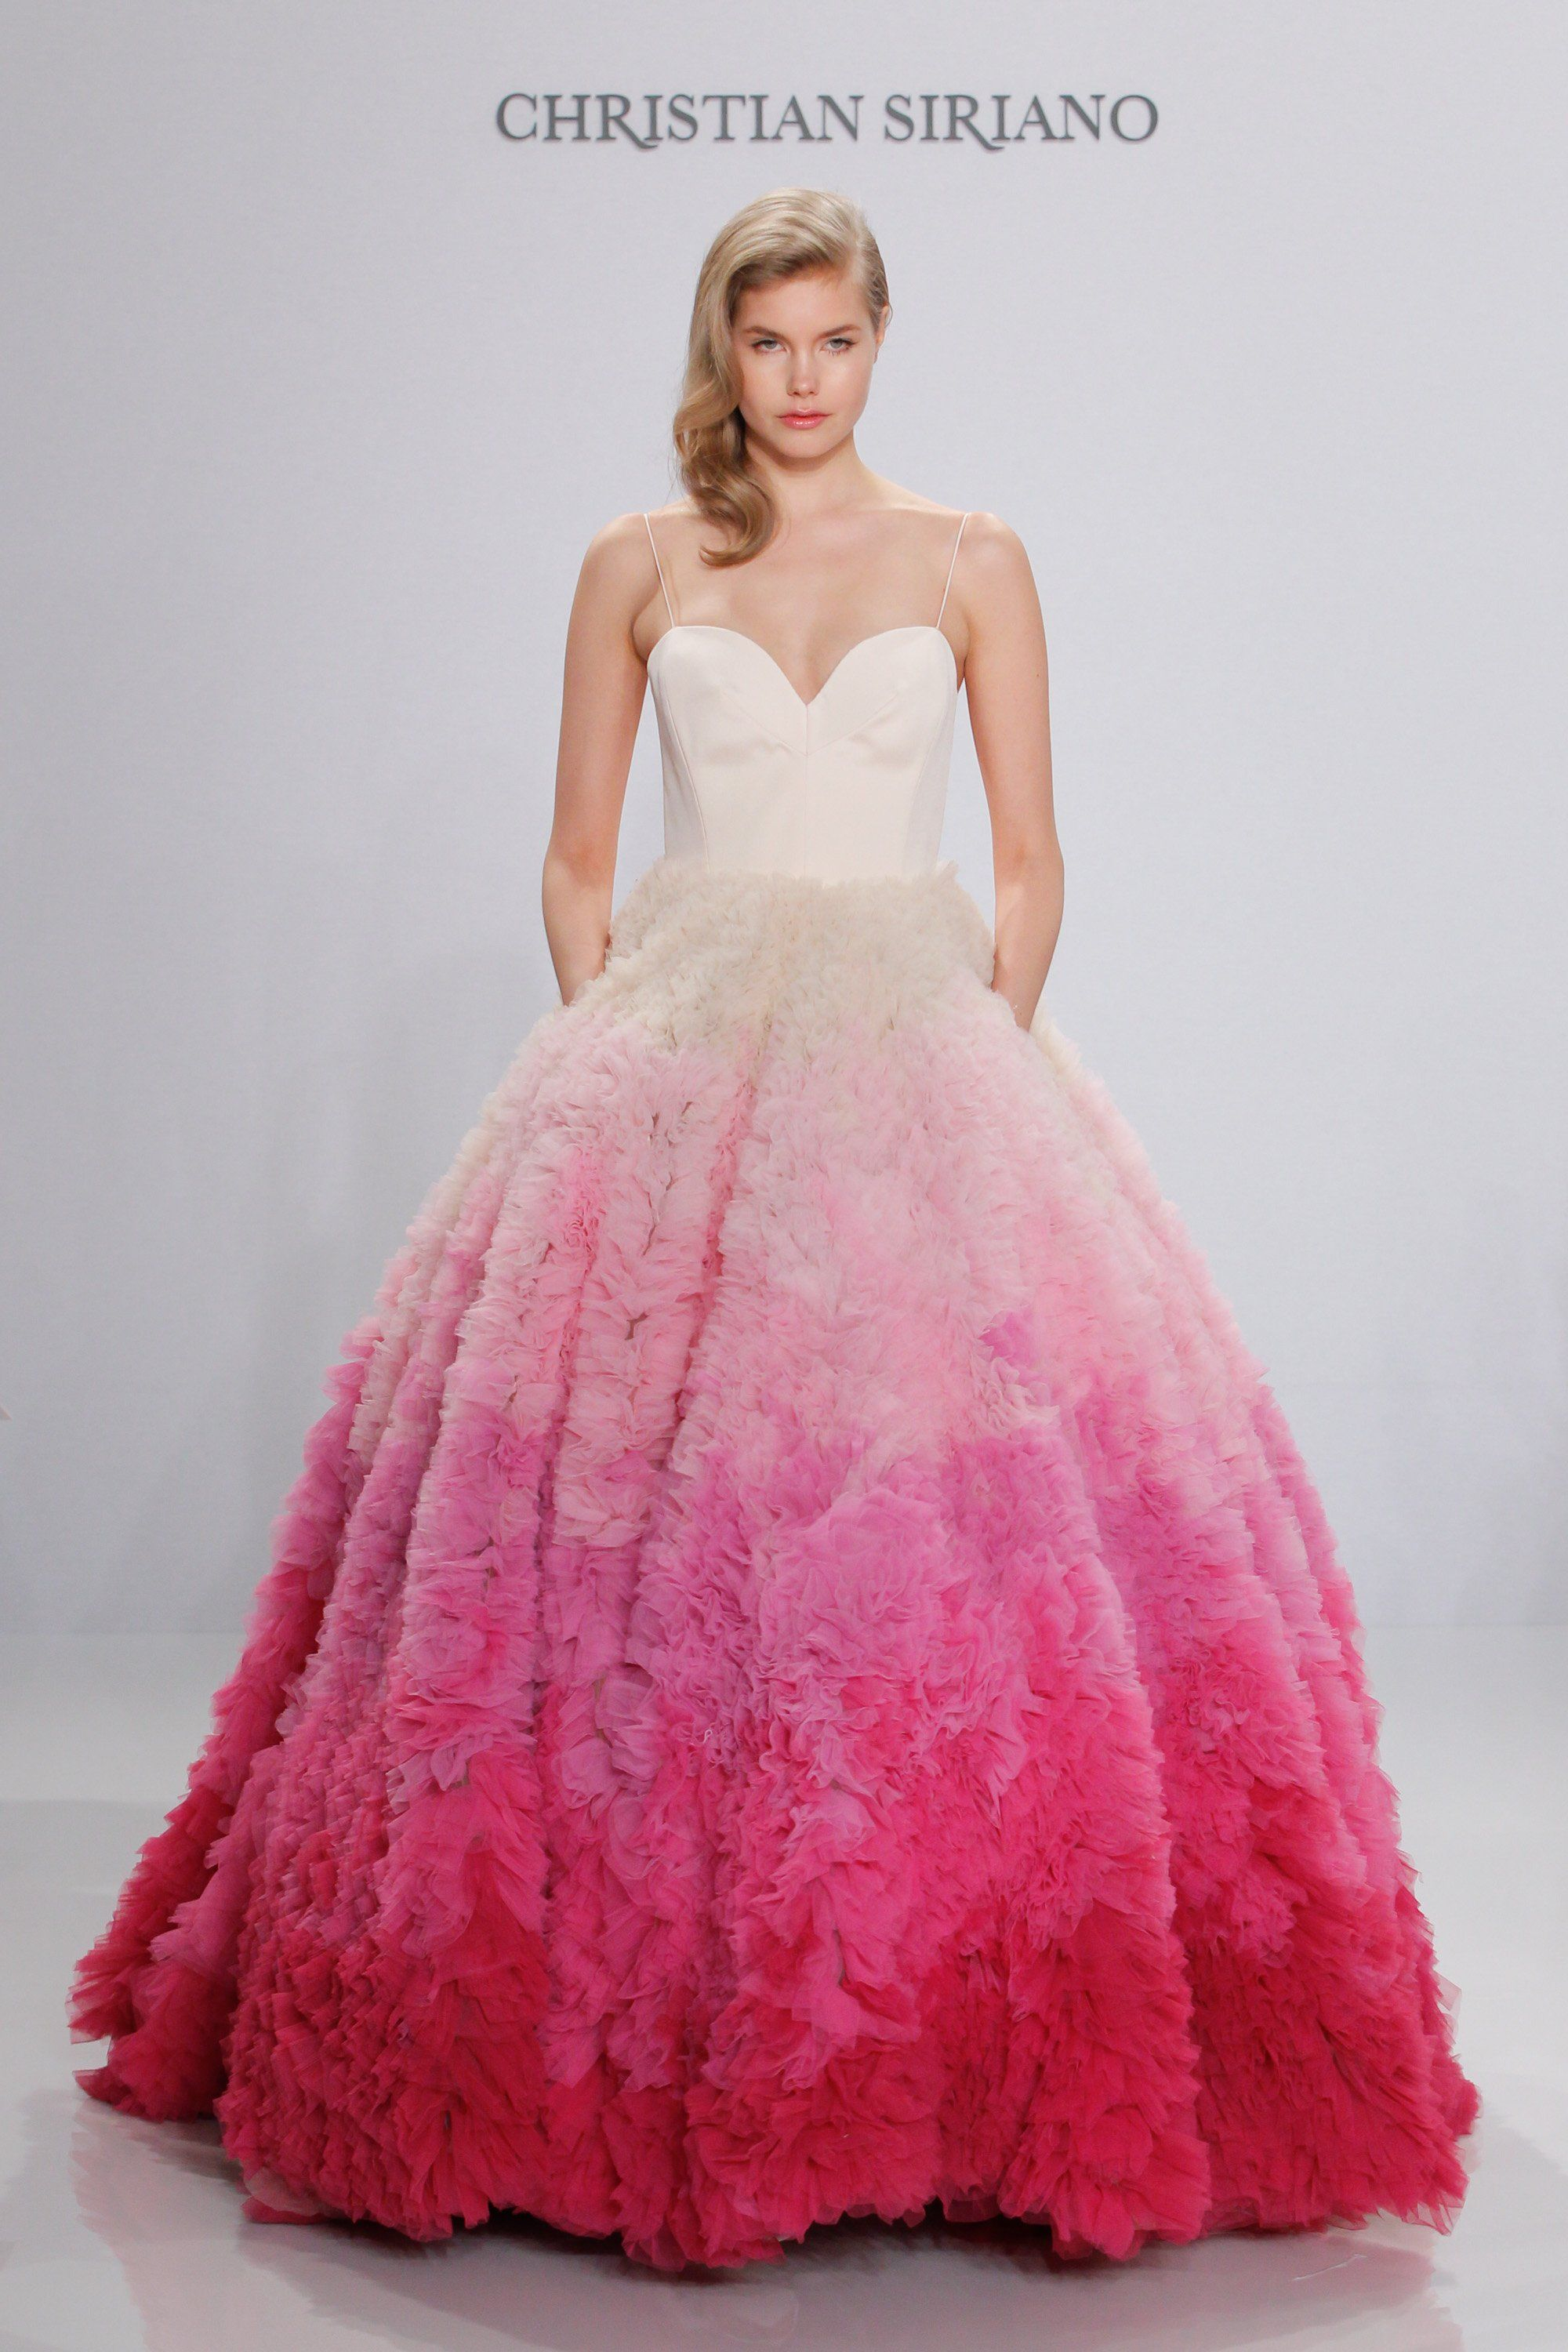 Used wedding dresses in michigan  Christian Siriano Bridal SpringSummer   Photos Photo